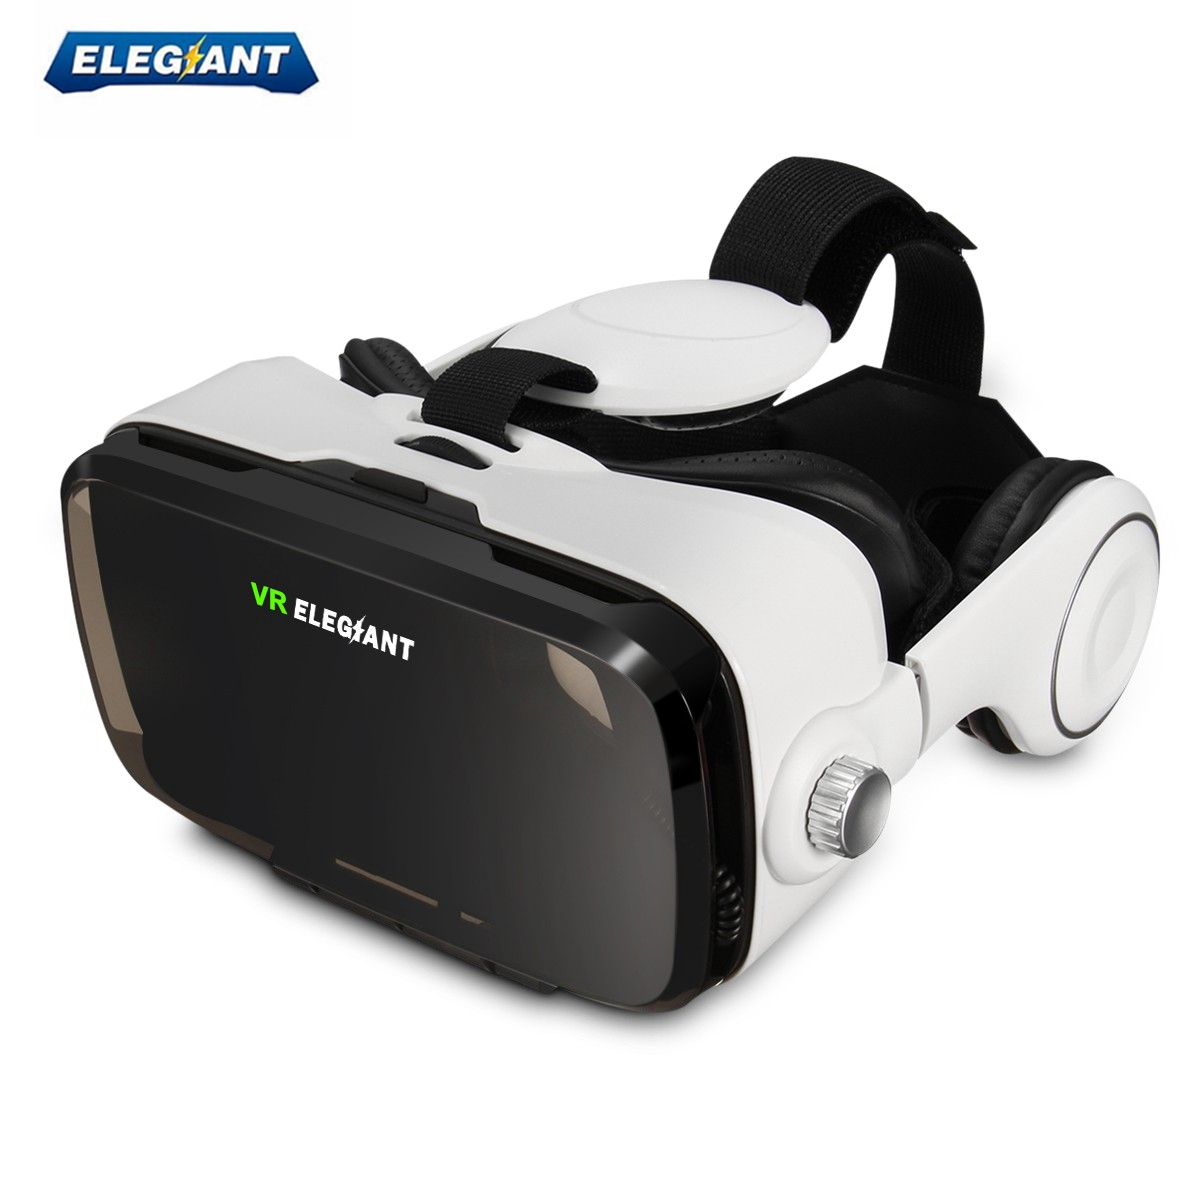 ELEGIAN VR Case Goggle Glasses Virtual Reality 3D Glasses Headset Movies Game For 4.0-6.0 inch Screen Mobile Phone Smartphone